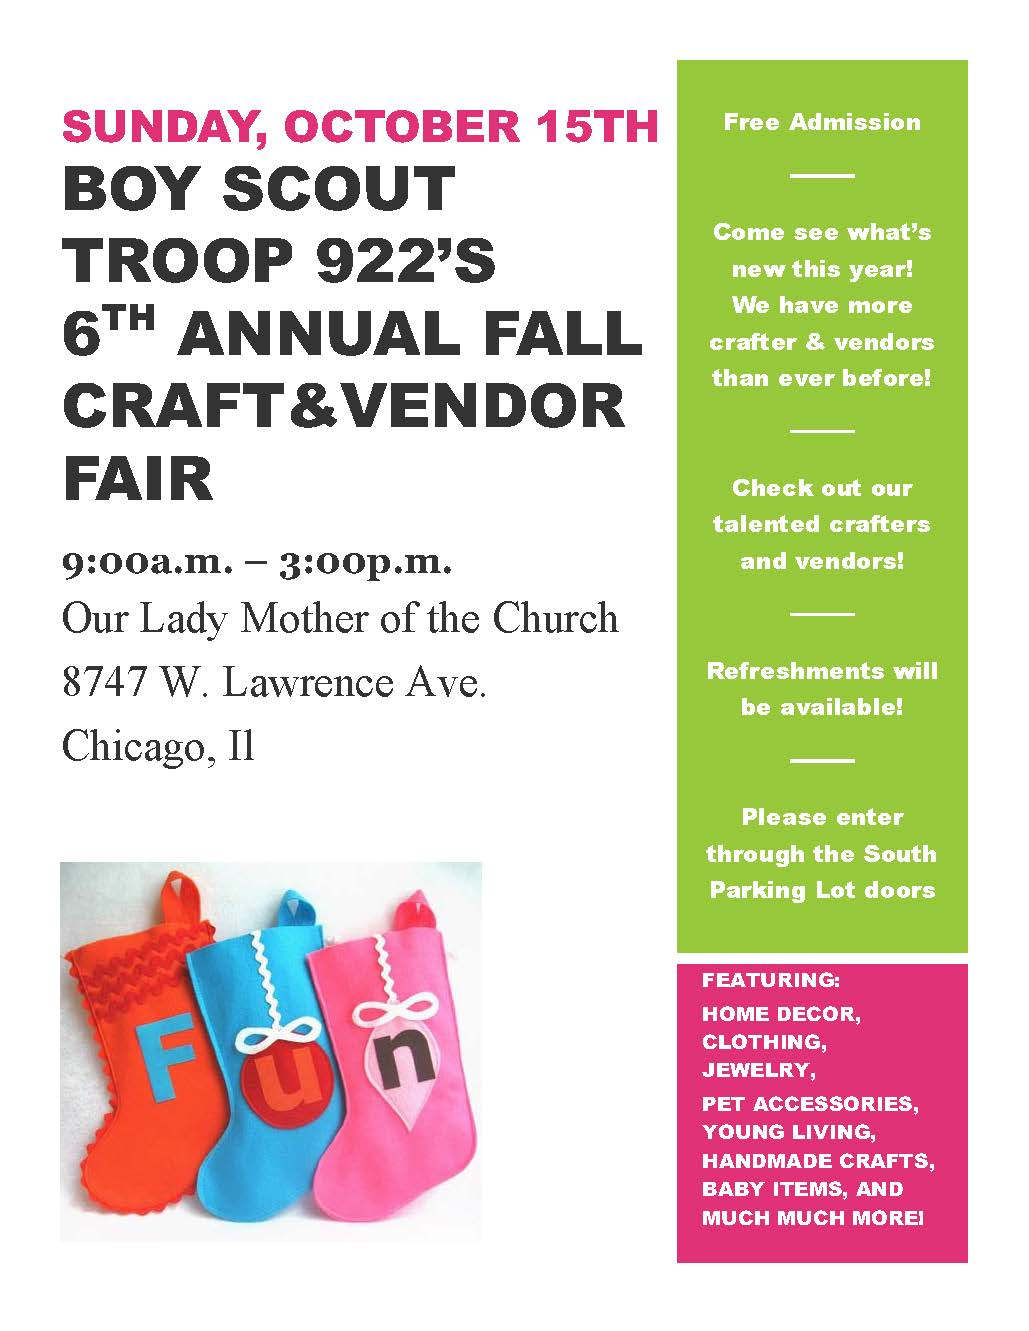 2017 Boy Scout Craft Fair Flyer